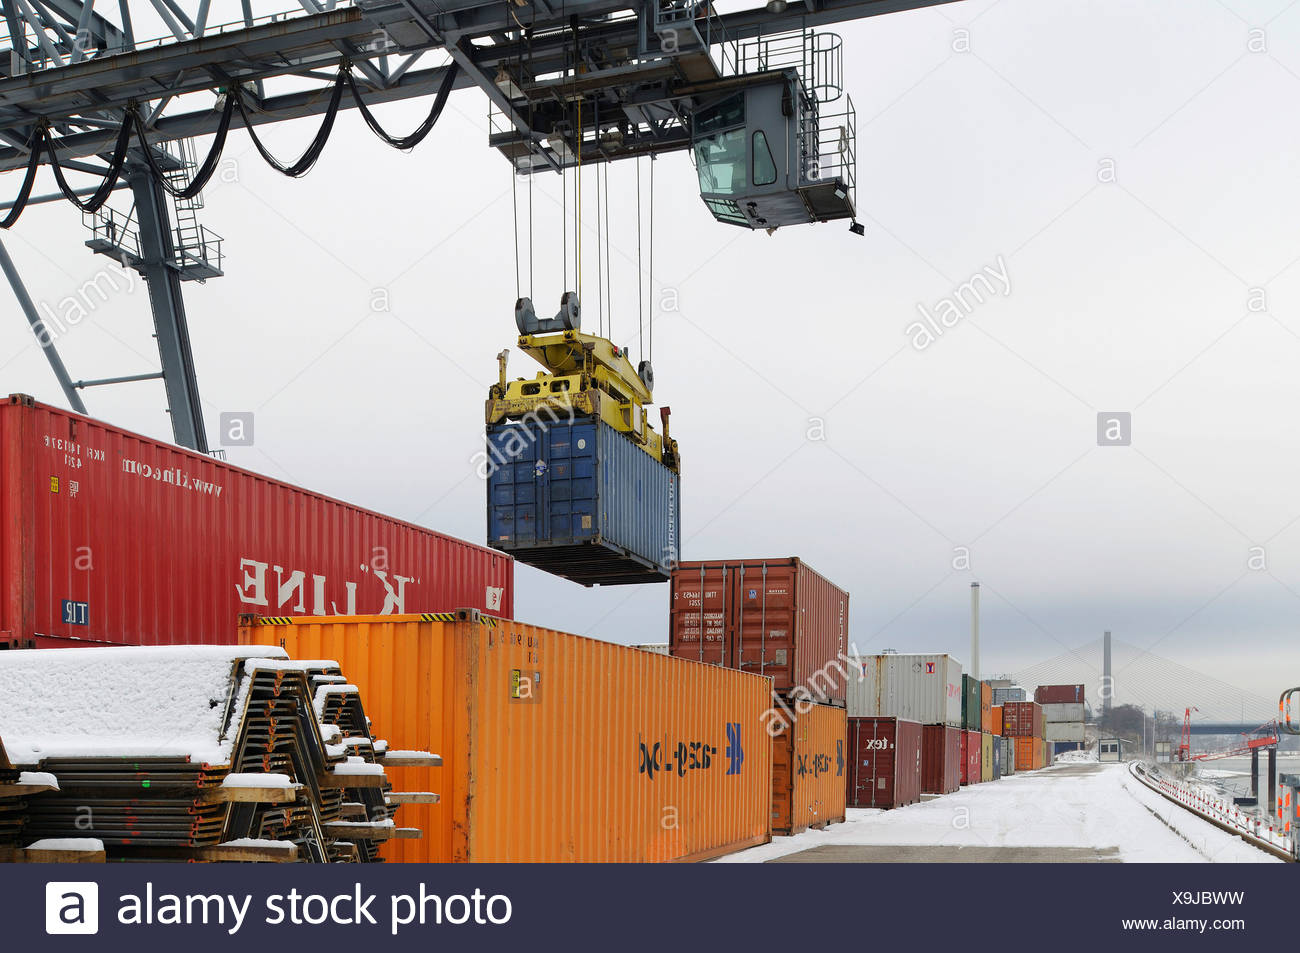 Container handling via portainer at Bonn Harbour, snow-covered quay, Containerterminal Bonn, North Rhine-Westphalia, Germany, E - Stock Image